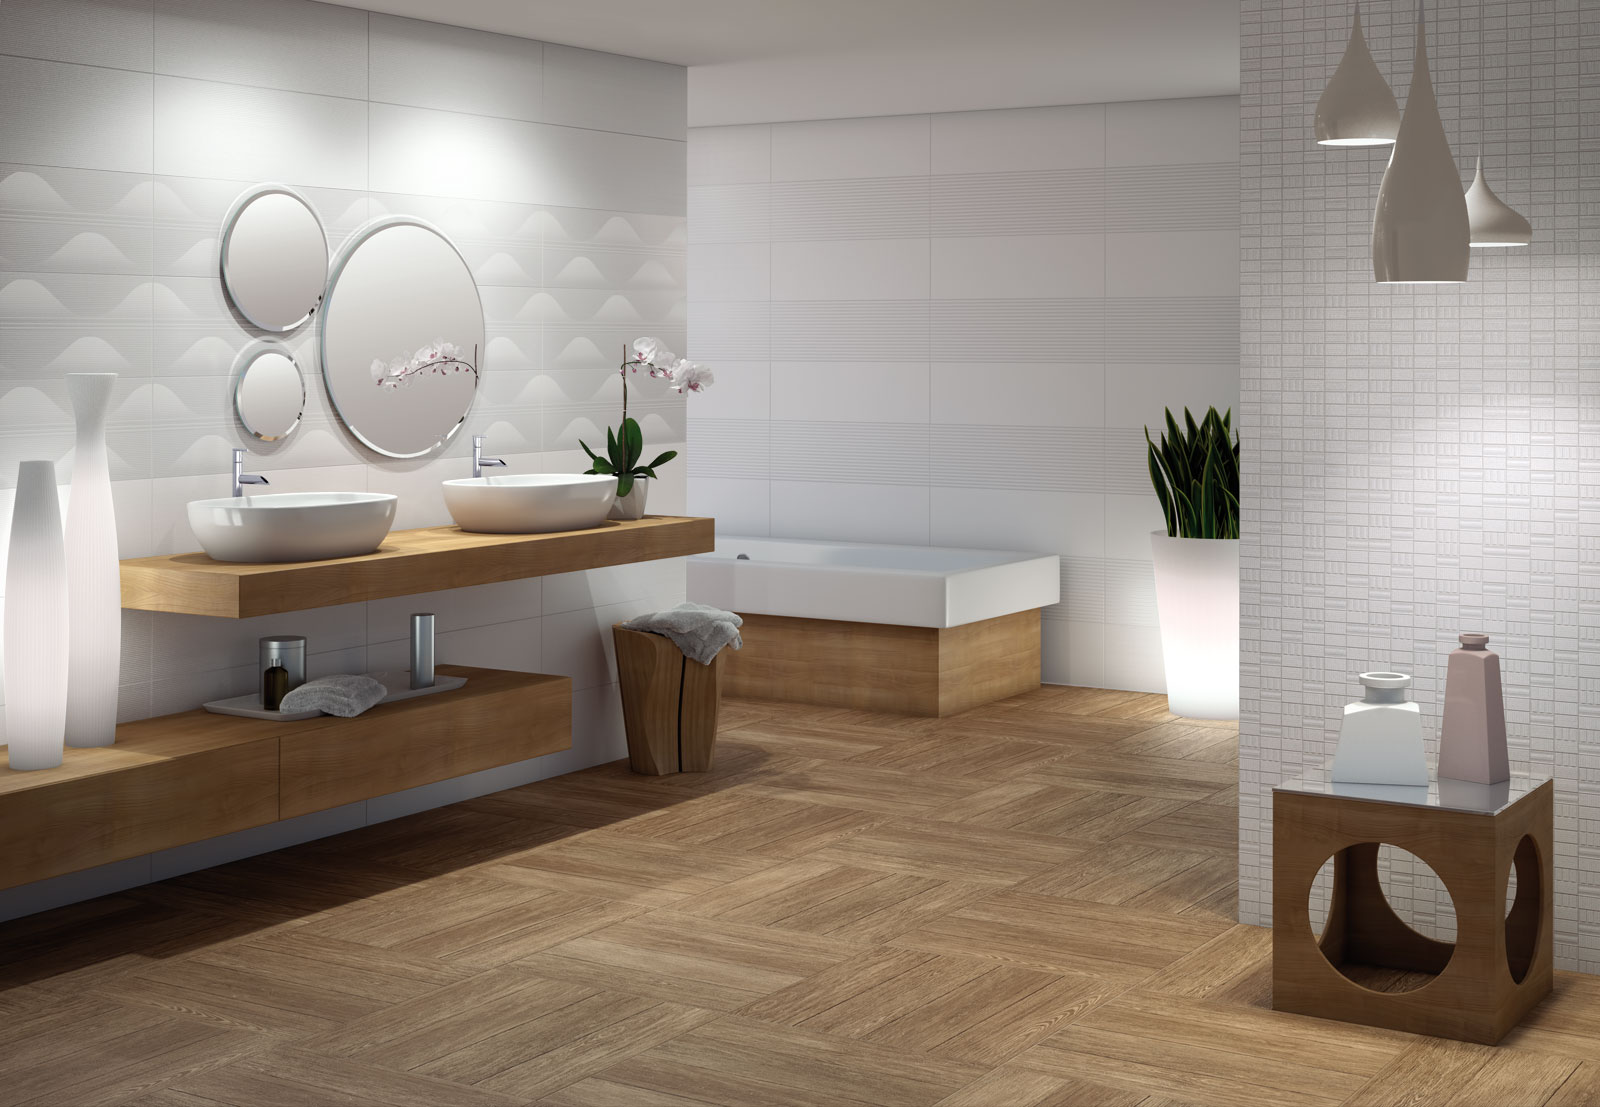 Verano spa and bathroom porcelain stoneware marazzi - Azulejos cuarto de bano ...